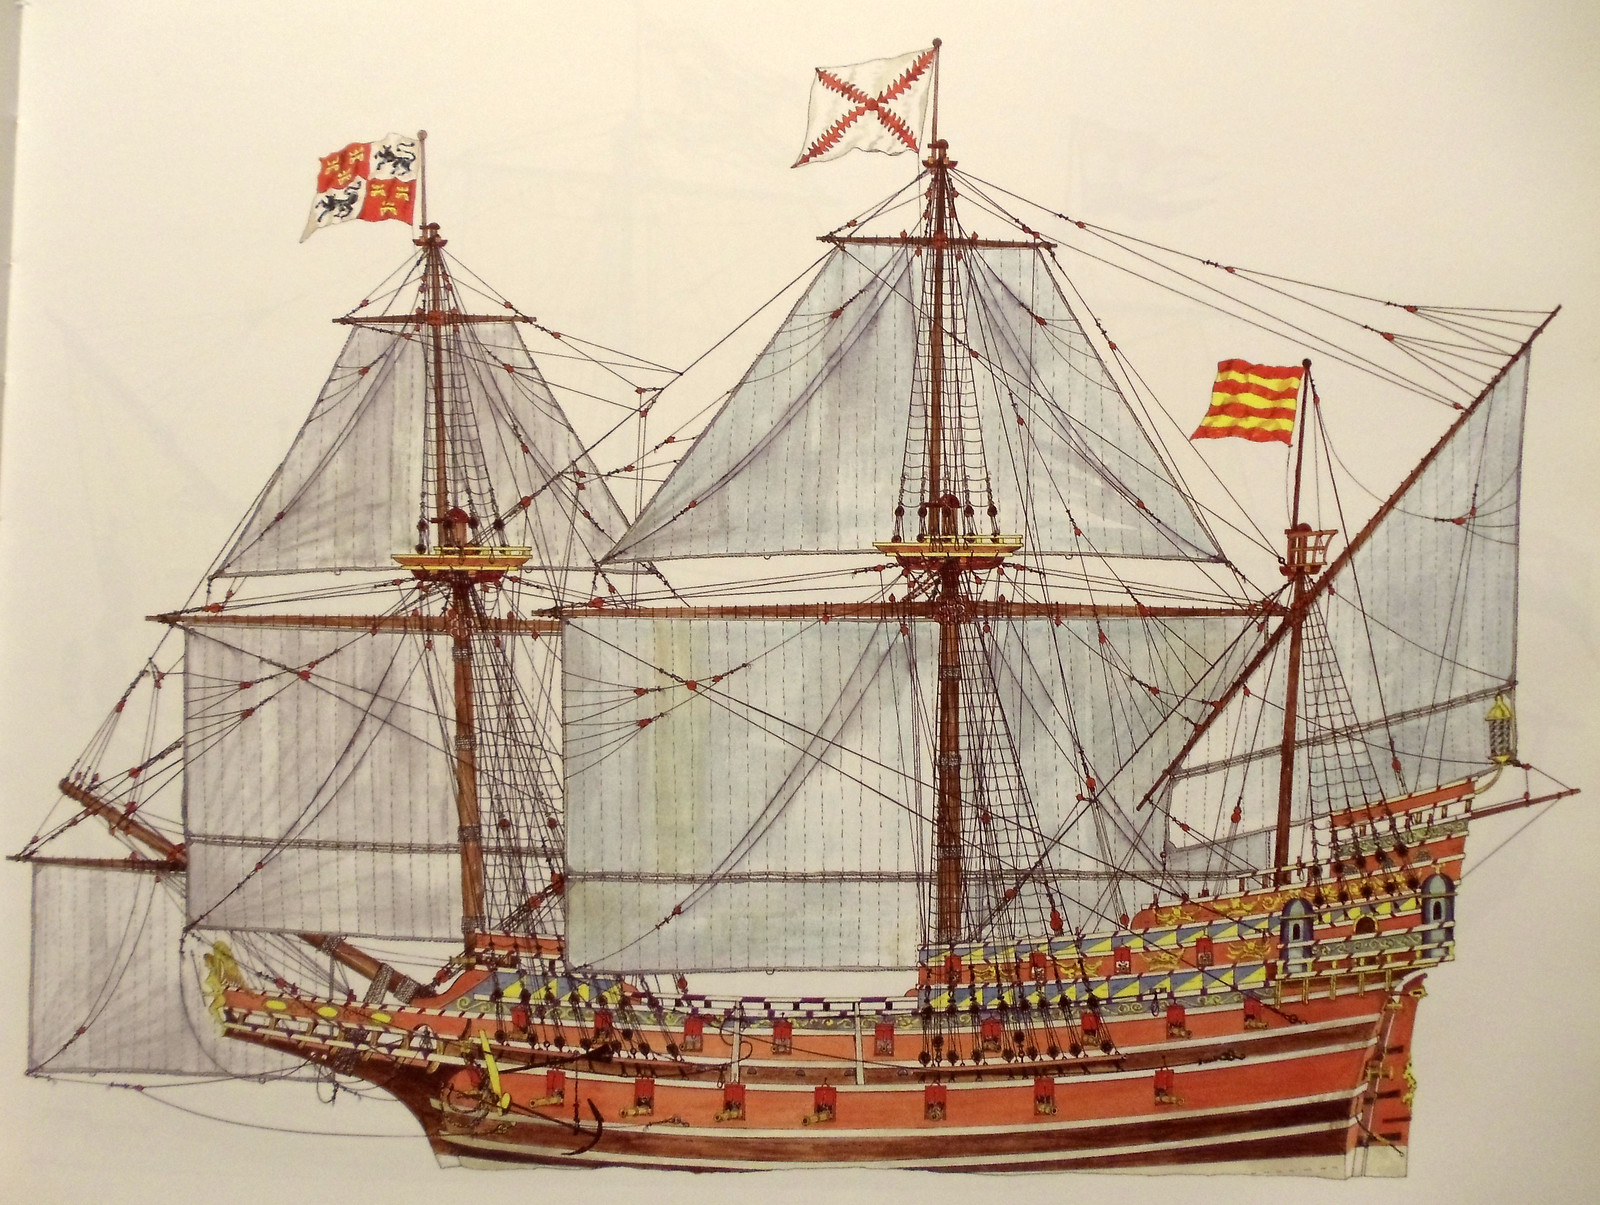 Spanish galleon - Wheatley | by modernknight1